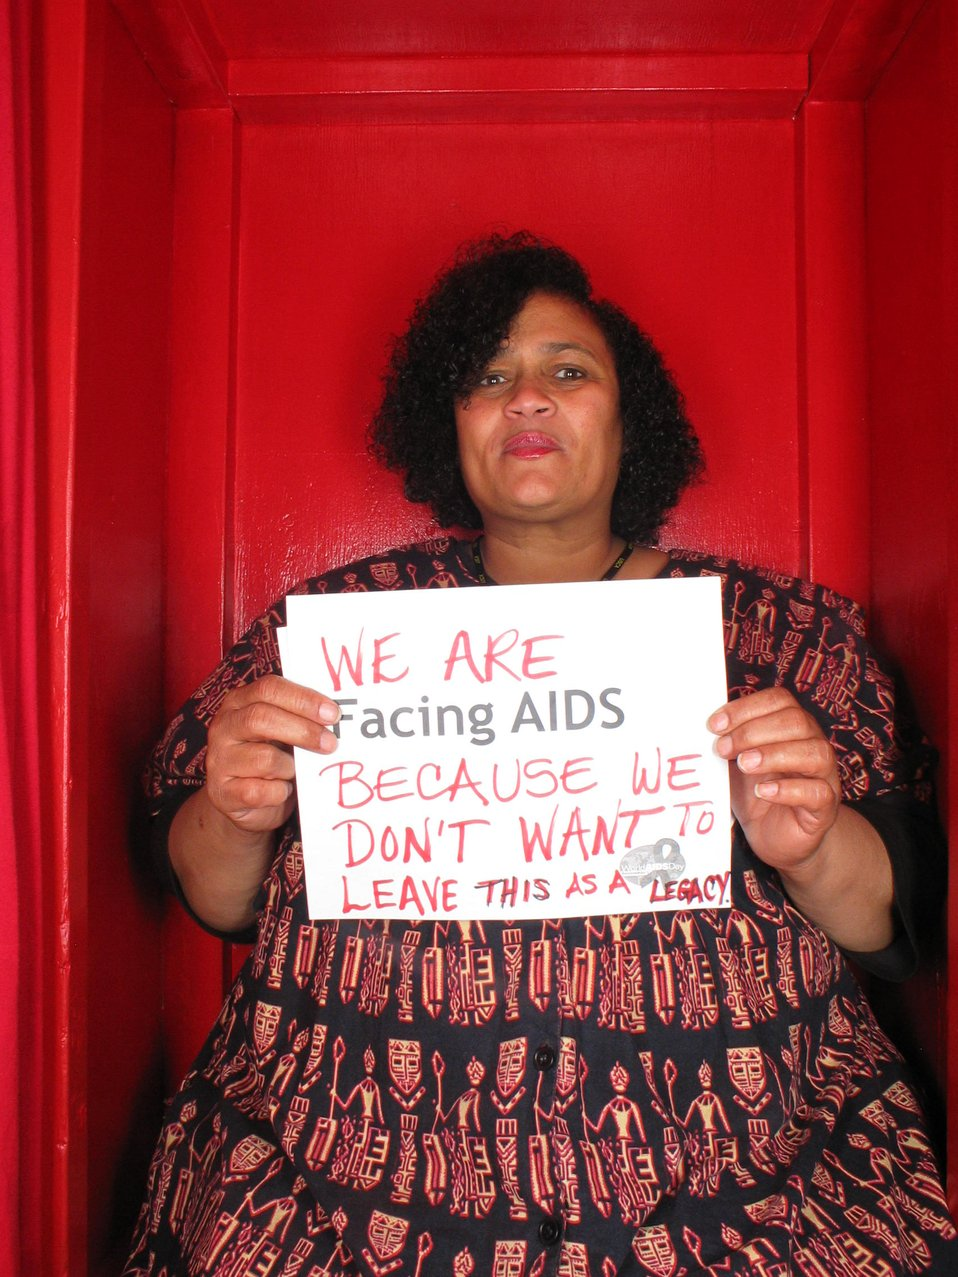 We are Facing AIDS because we don't want to leave this as a legacy.